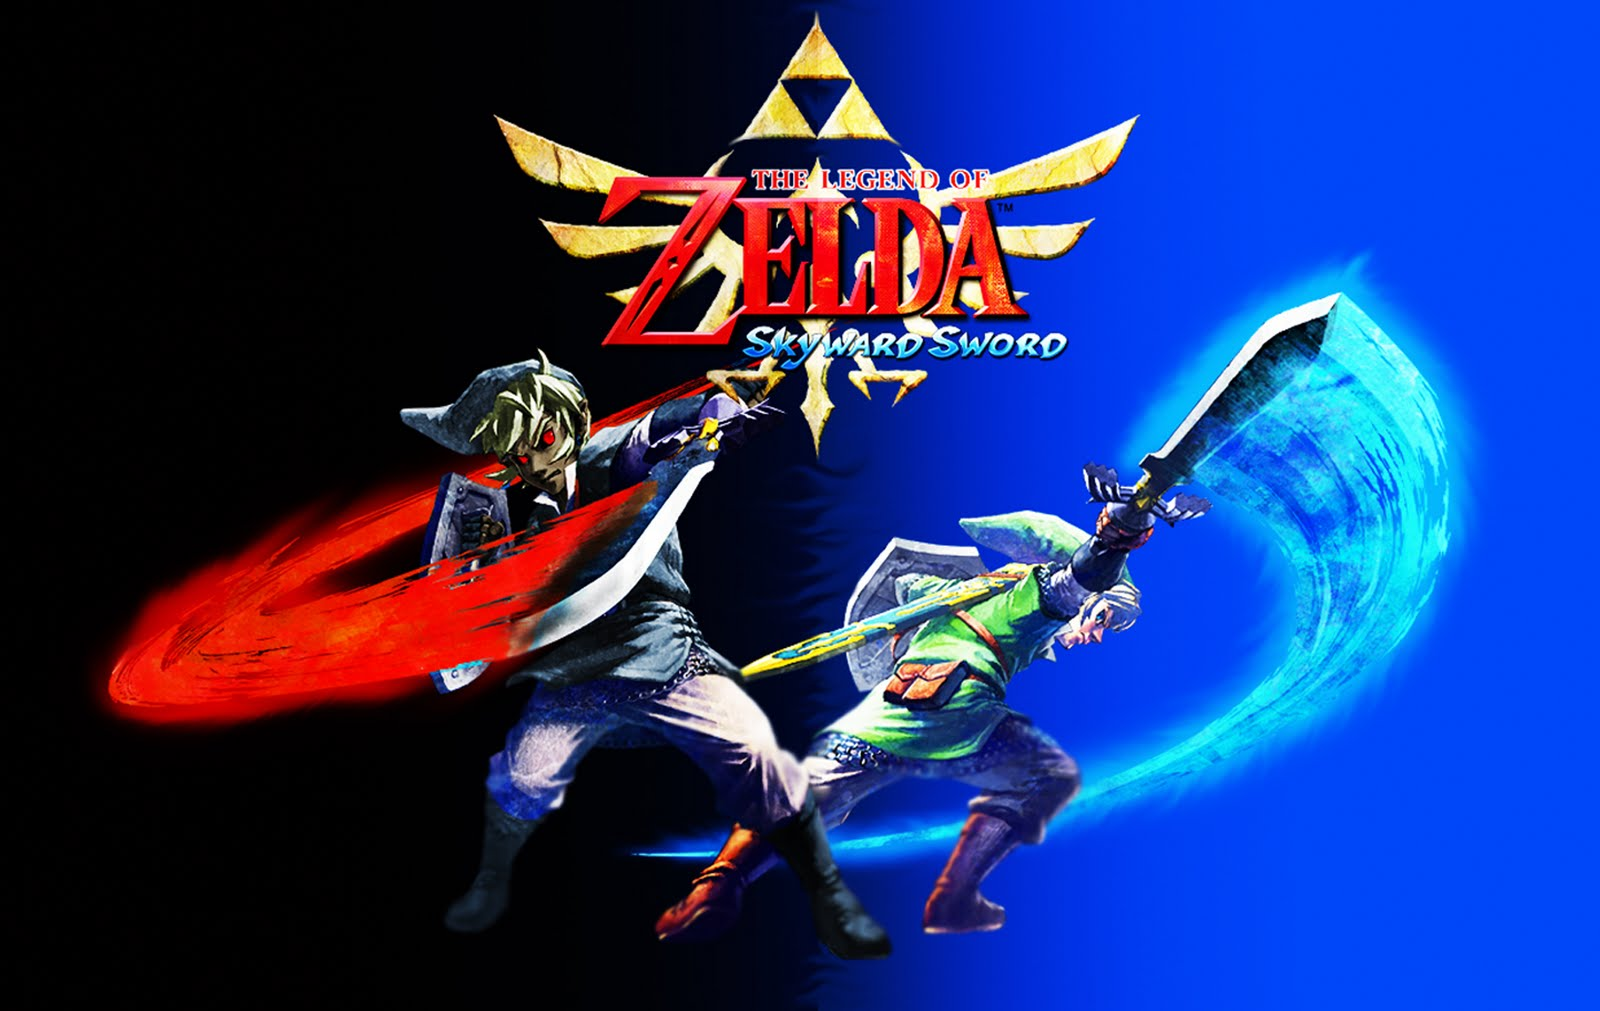 The Legend of Zelda Skyward Sword wallpaper 4